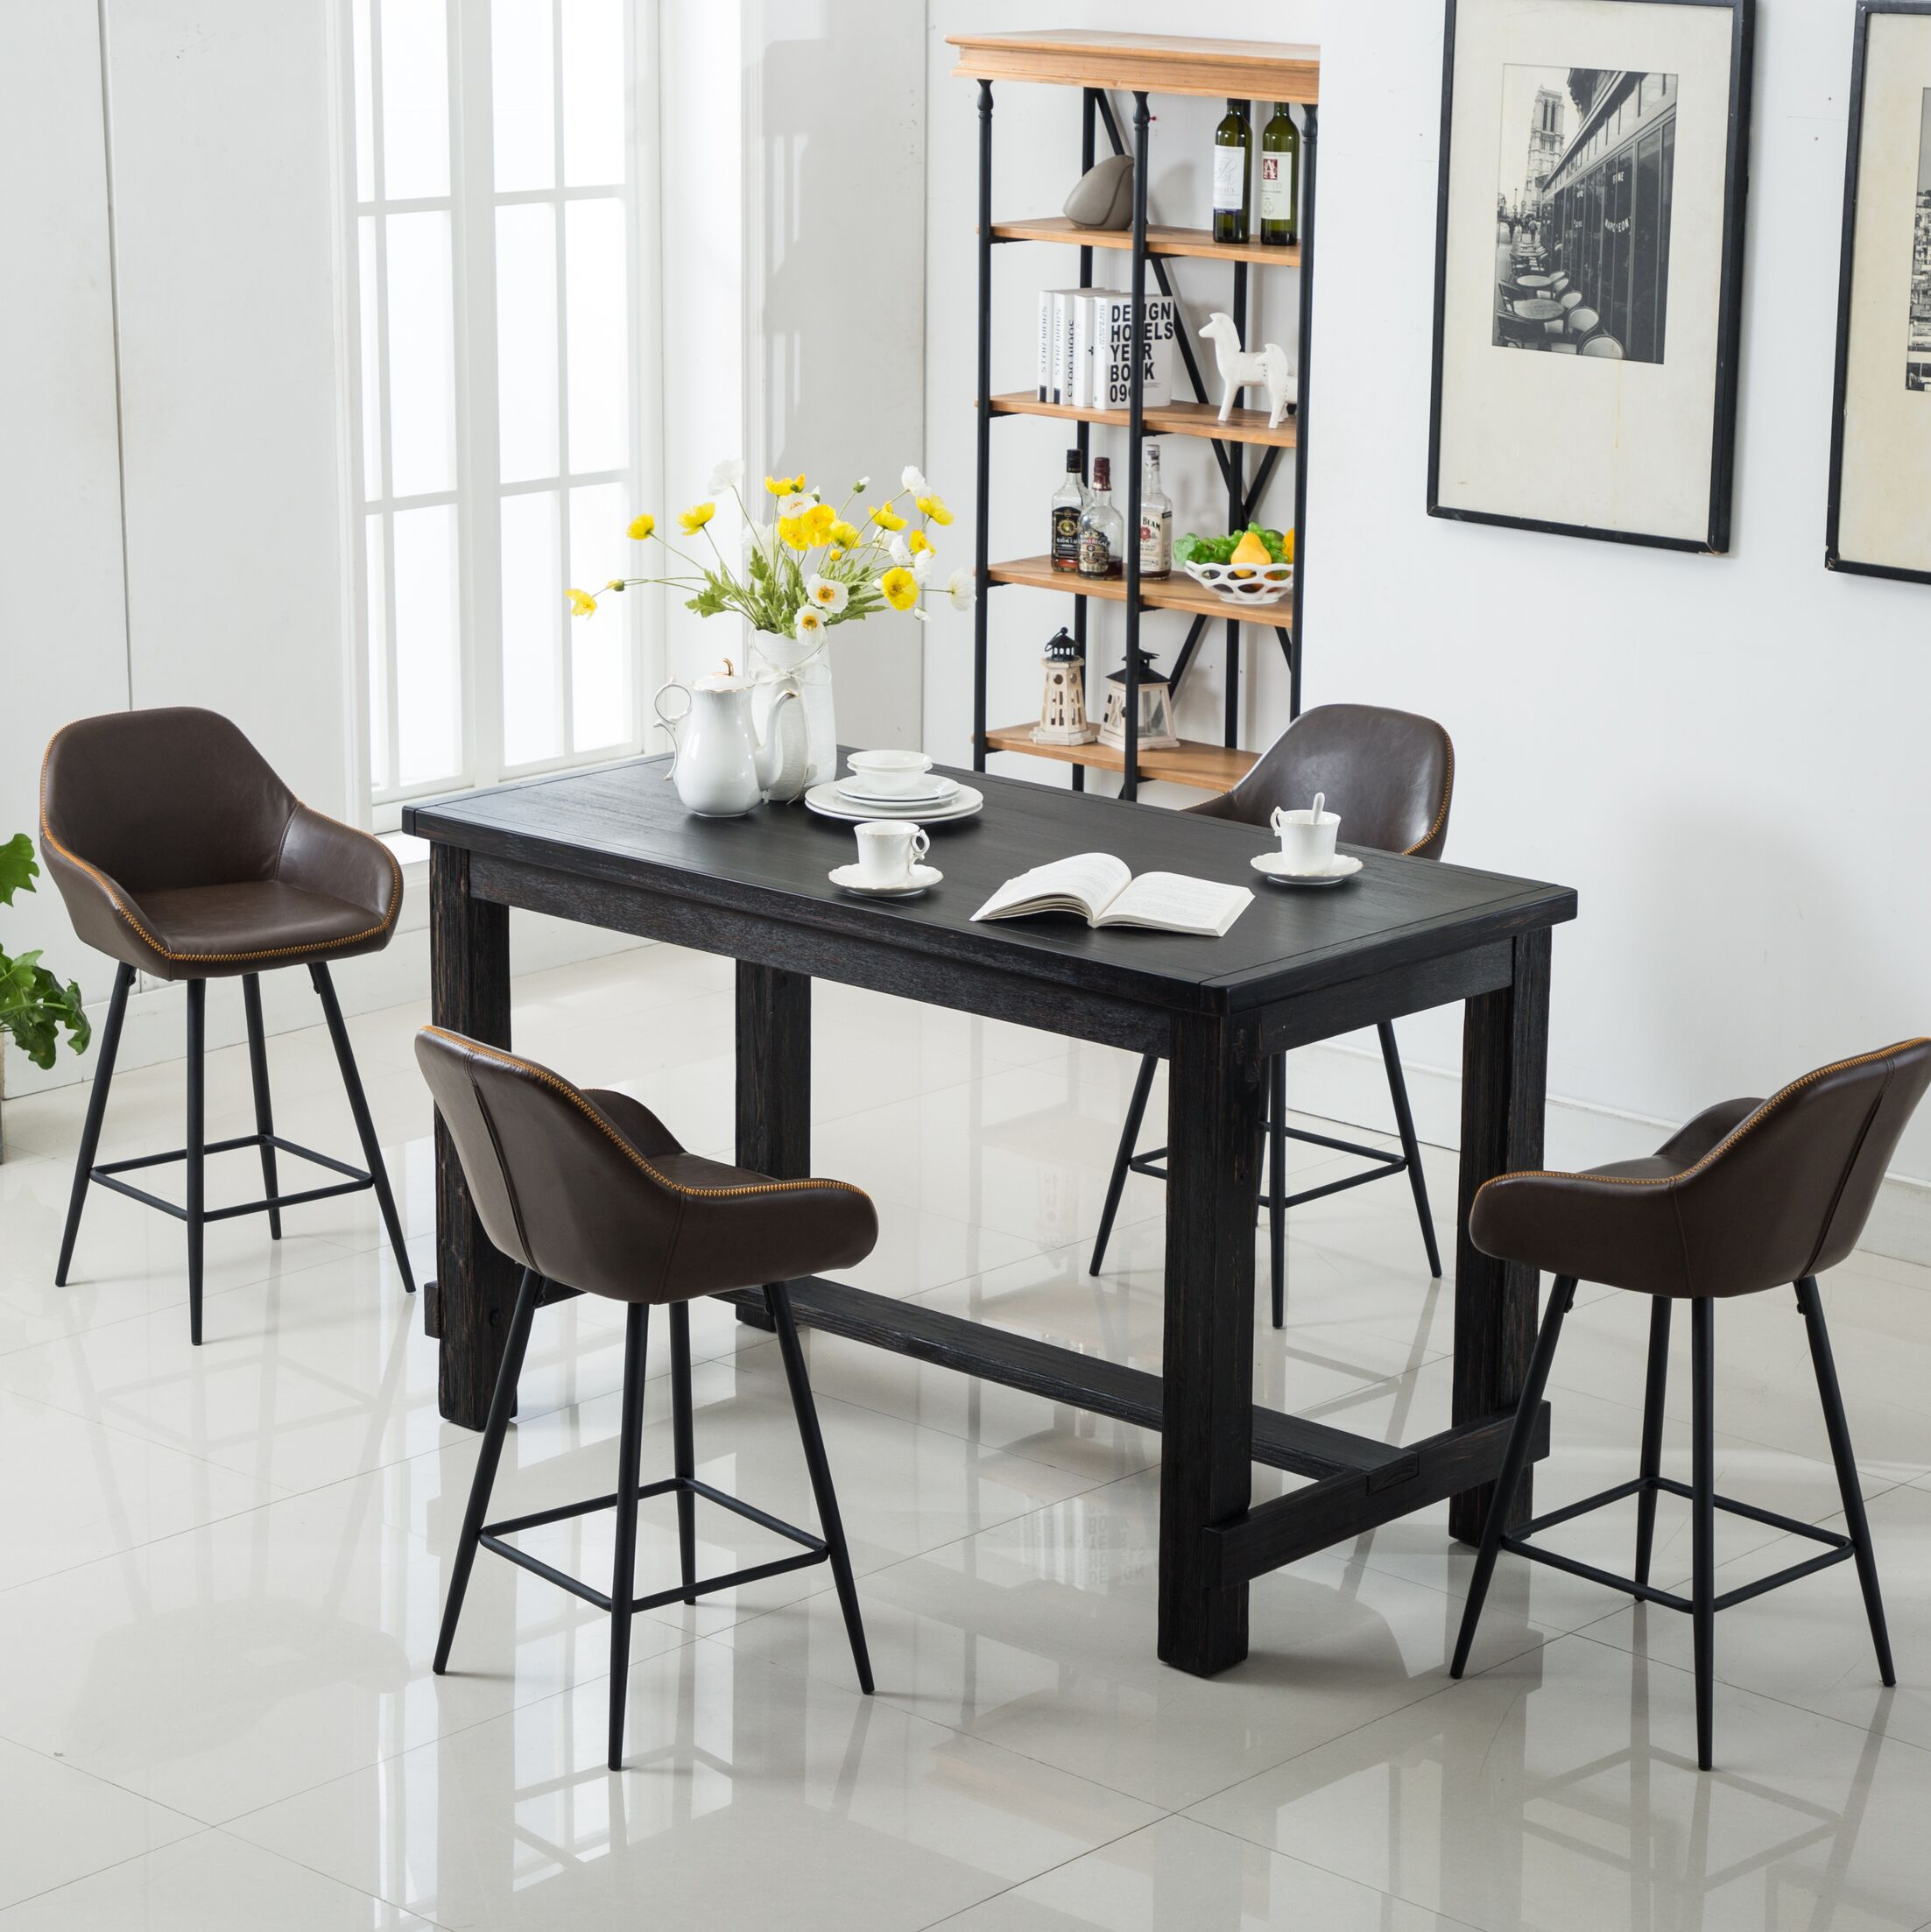 Dining Table Sets Shoemaker 5 Piece Counter Height Dining Set